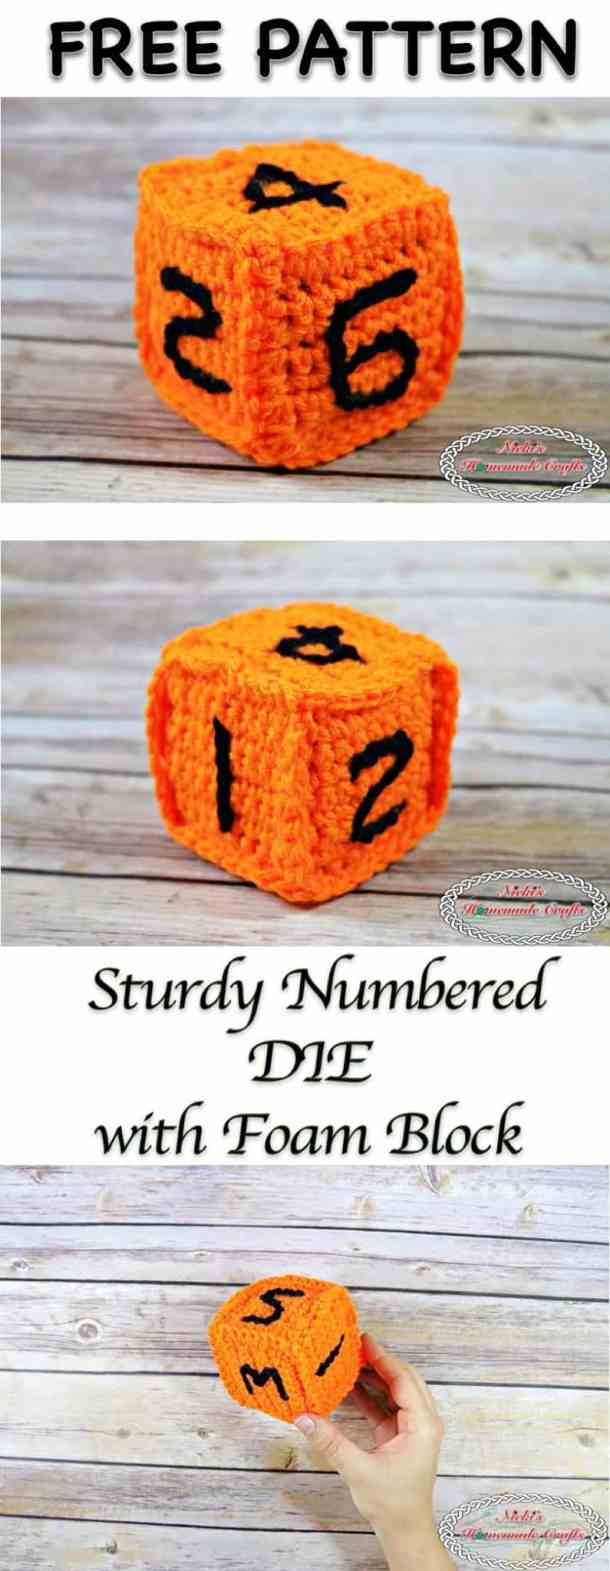 Sturdy Numbered DIE with Foam Block - Free Crochet Pattern by Nicki's Homemade Crafts - Make many dice for school kids